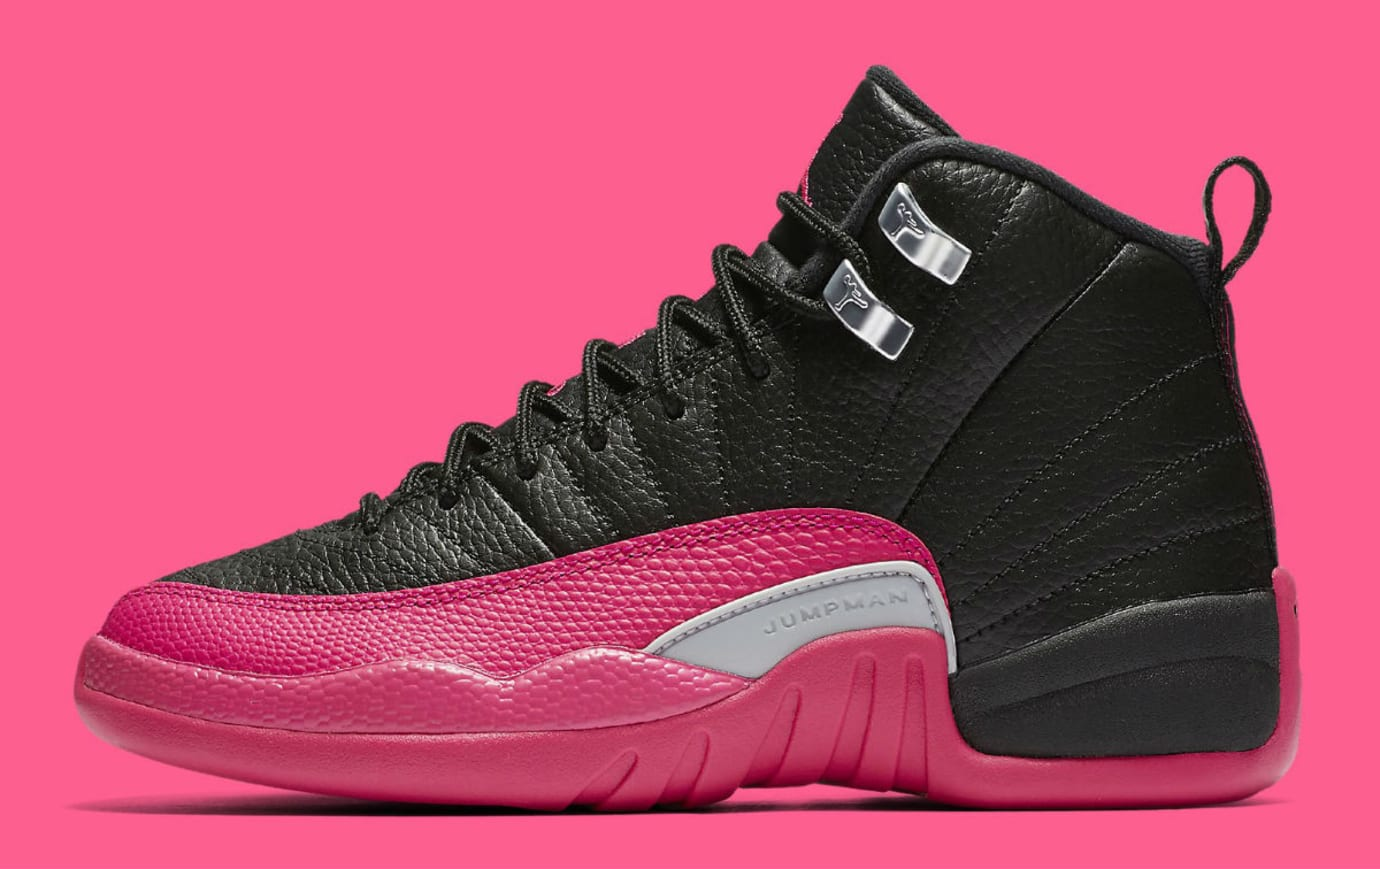 Air Jordan 12 Deadly Pink Release Date Profile 510815-026